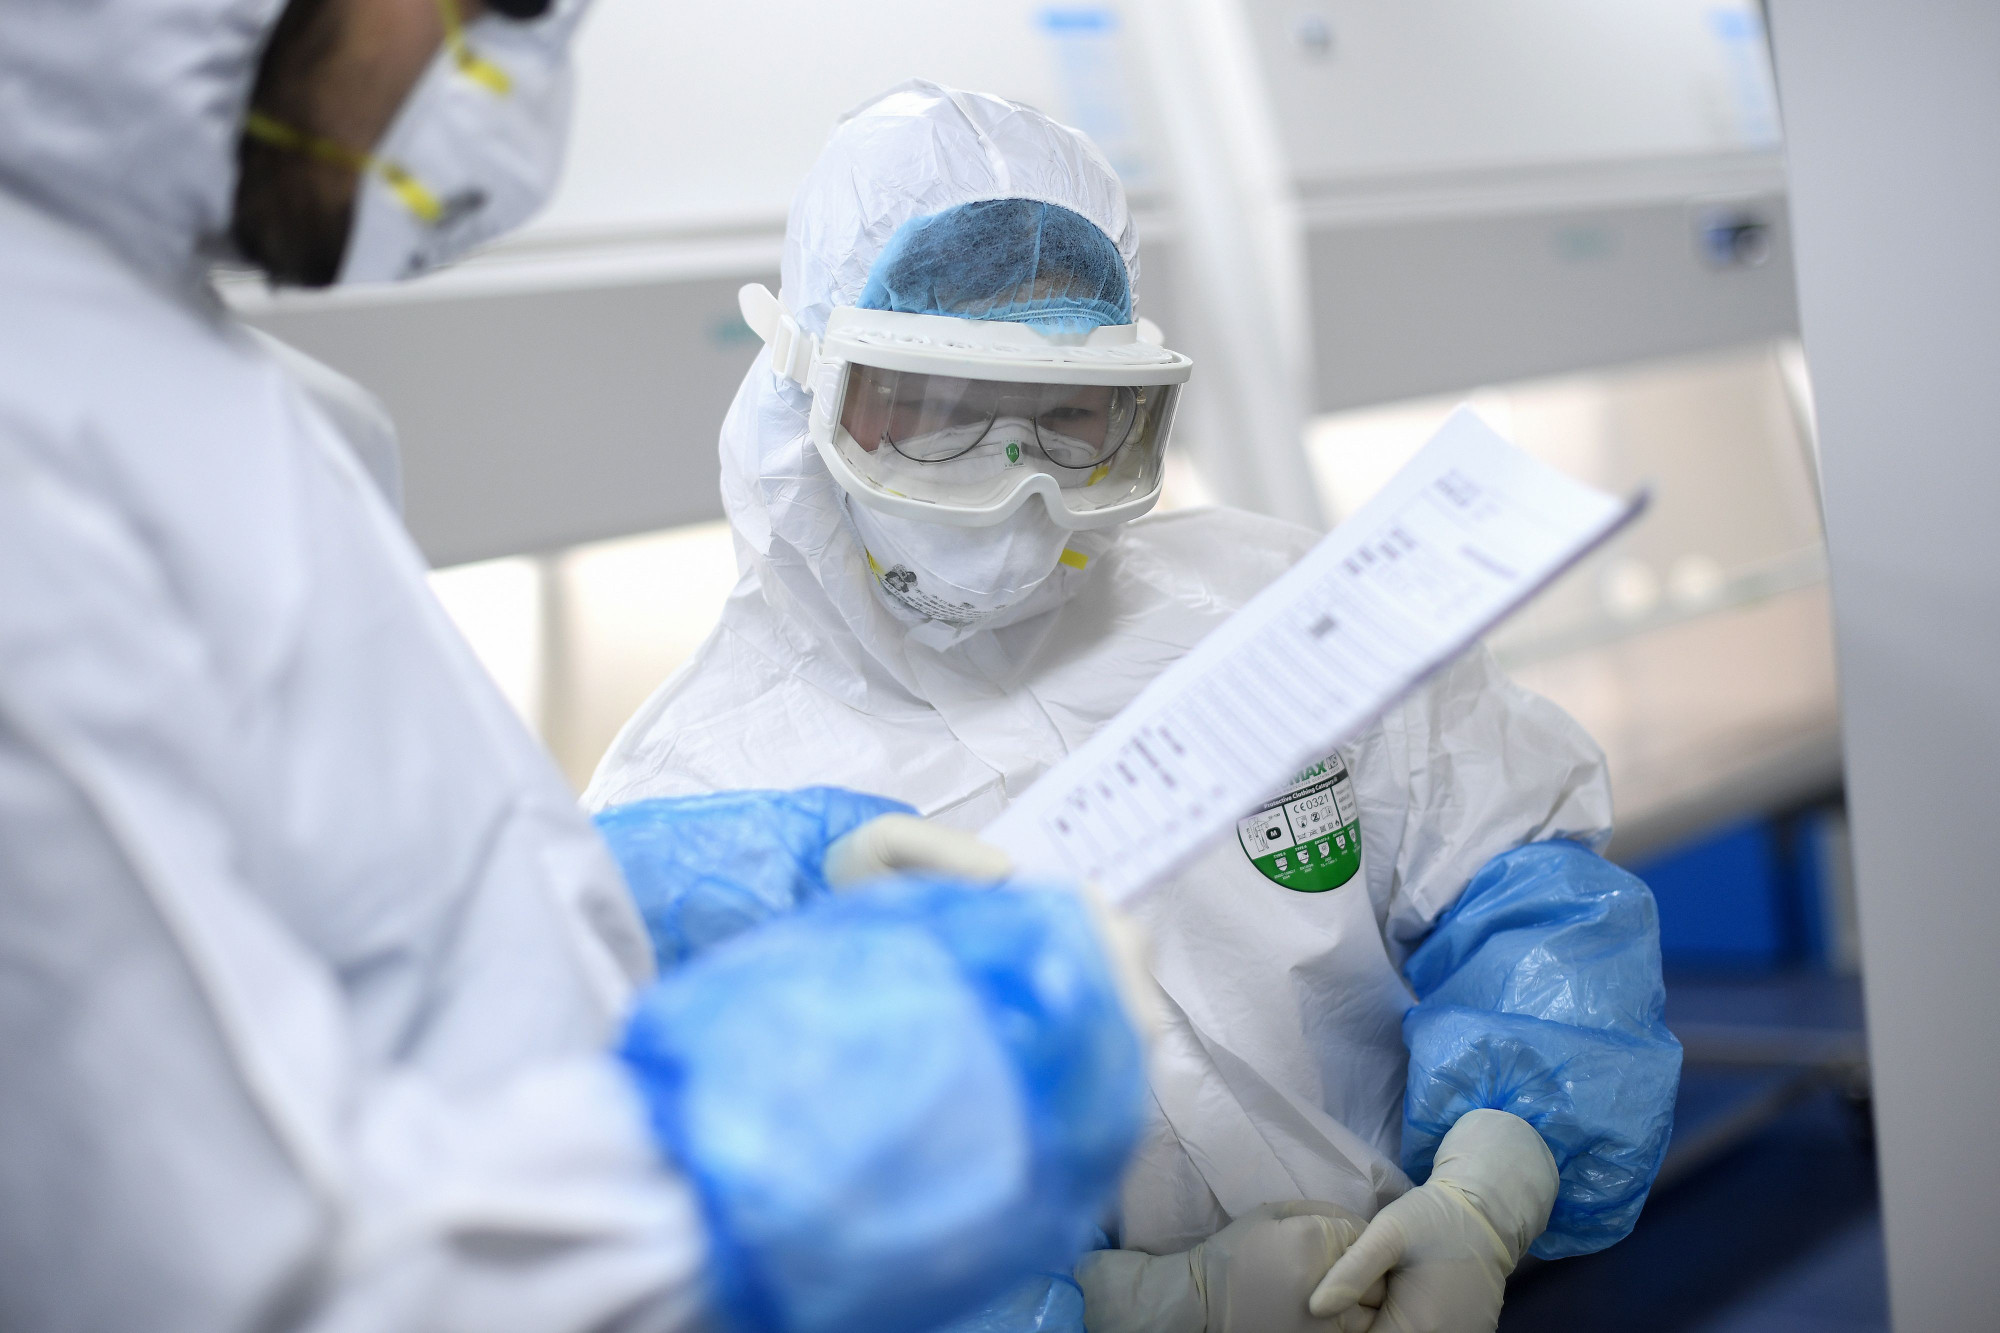 Amid Virus Outbreak, Funeral Home Officials in Wuhan Reveal Sharp Increase in Cremations